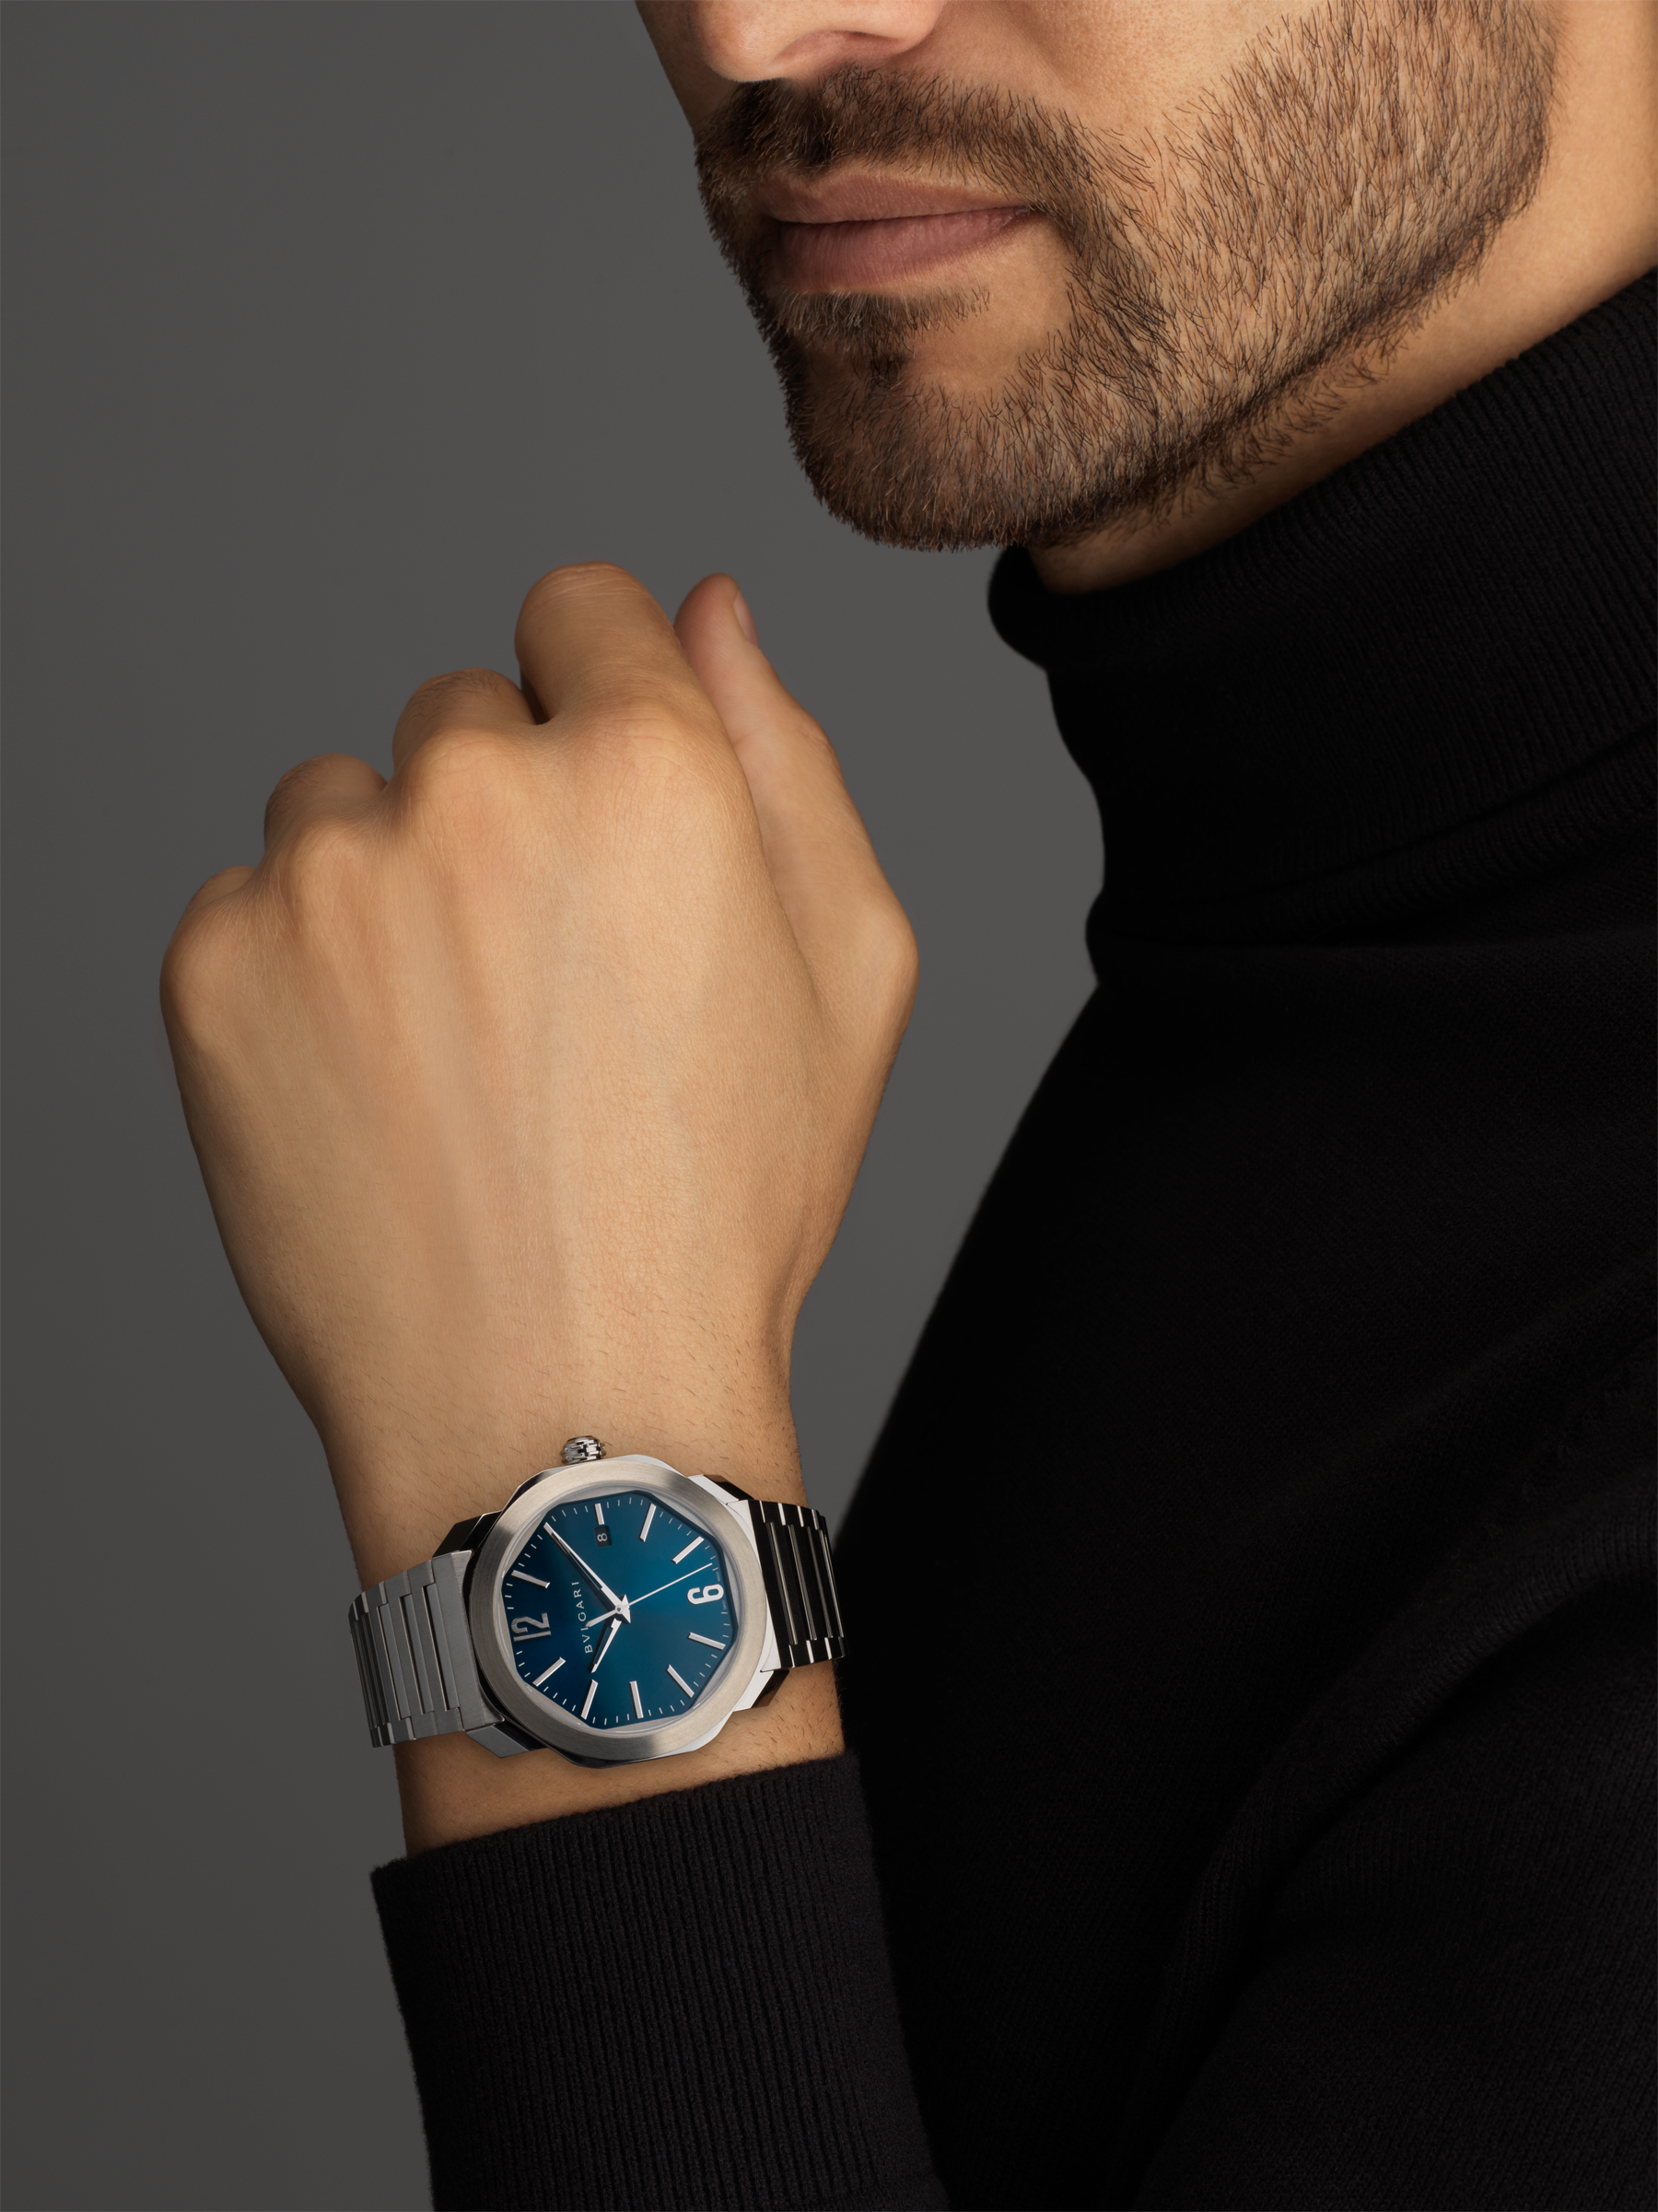 Octo Roma watch with mechanical manufacture movement, automatic winding, stainless steel case and bracelet, blue dial. 102856 image 5